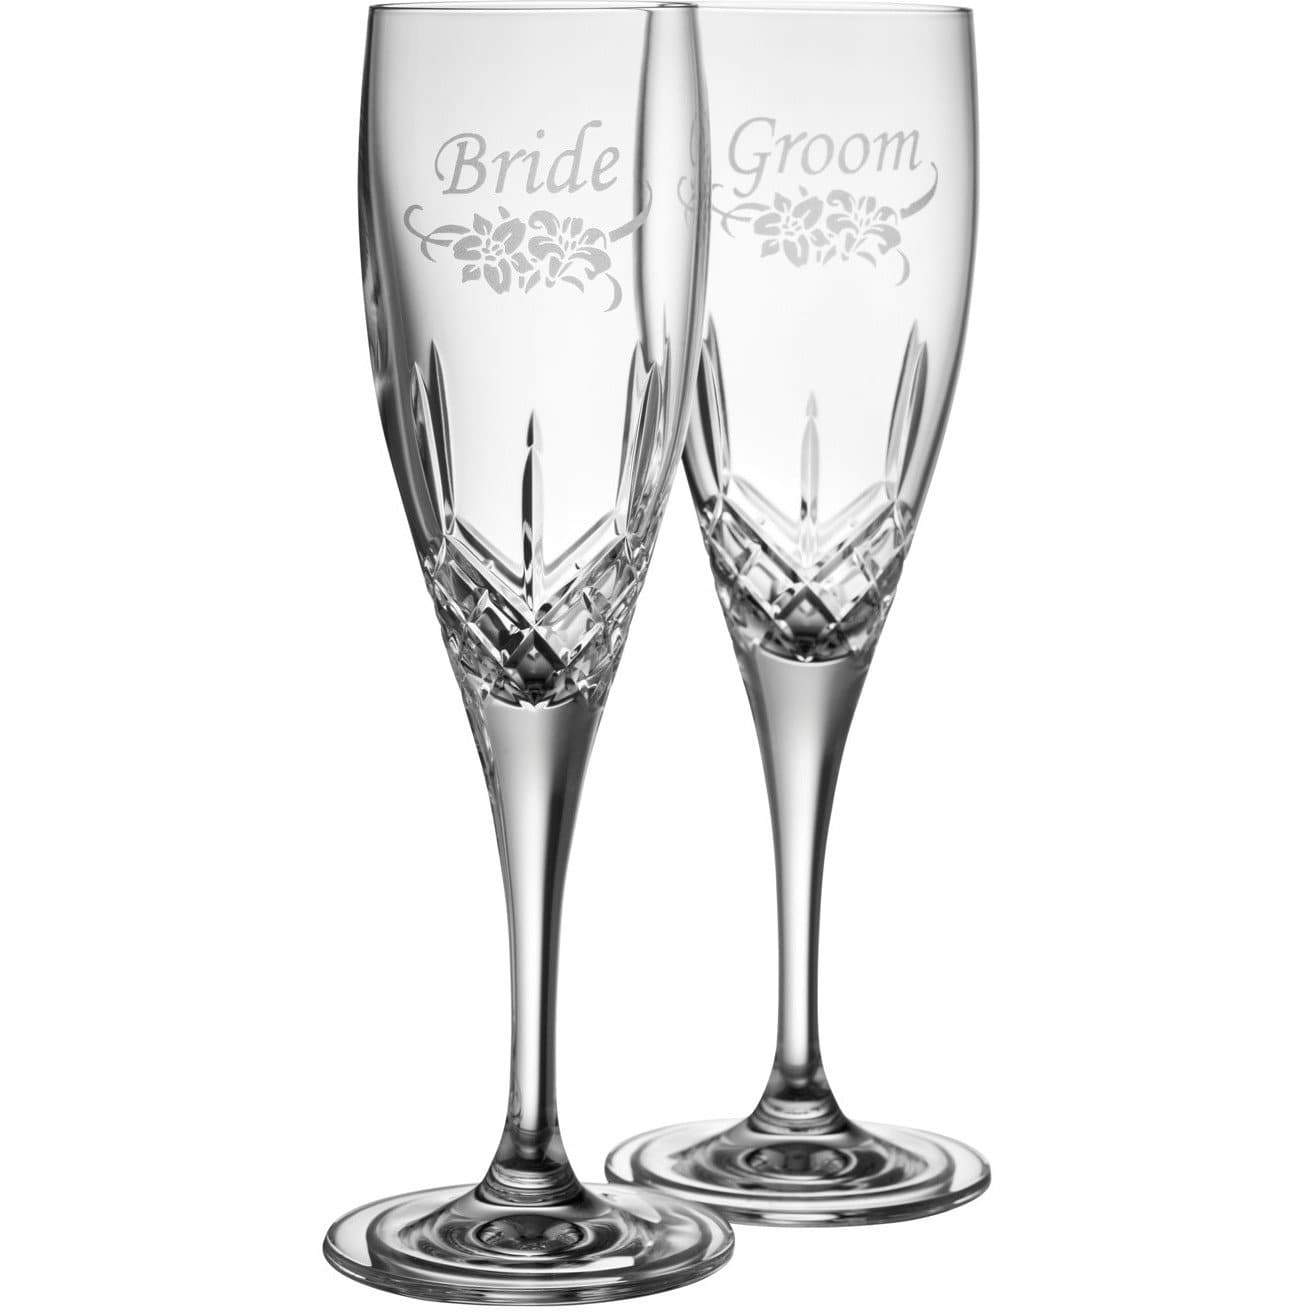 NEW Bride & Groom Flute Glass Floral Spray Pair